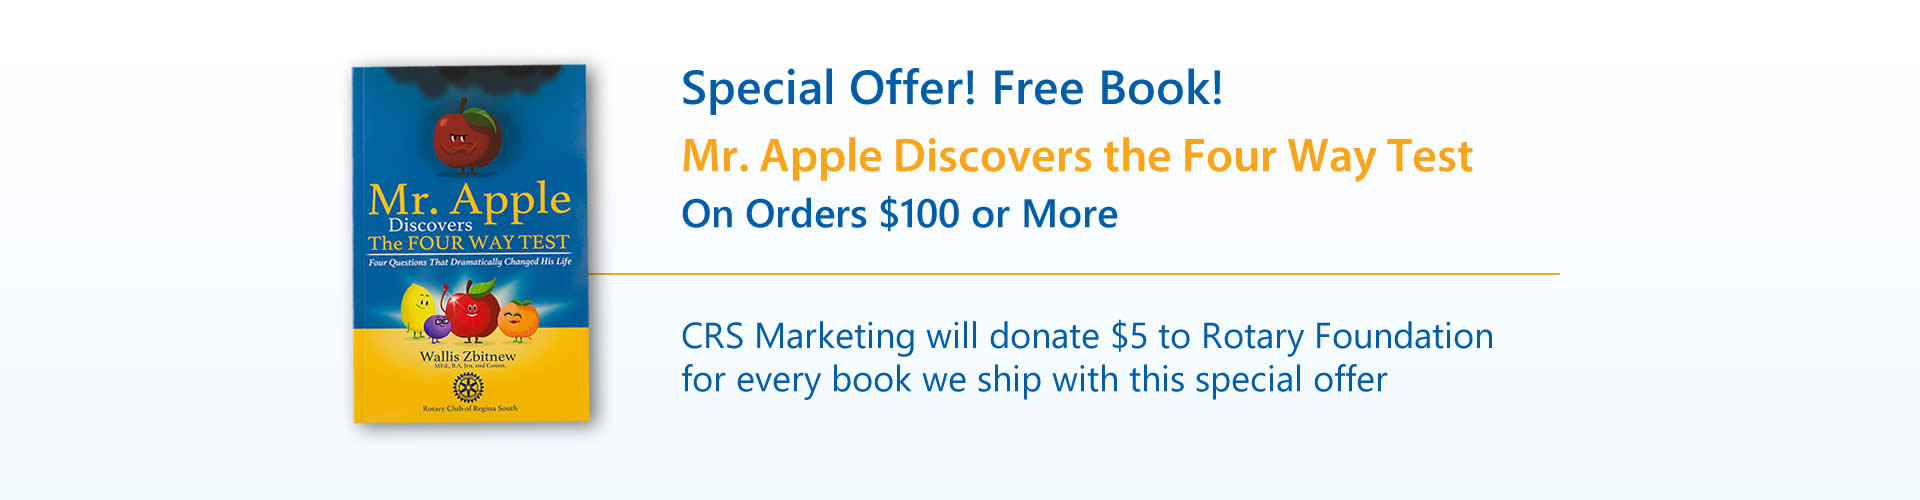 Special Offer - Free Book Mr. Apple Discovers Four Way Test